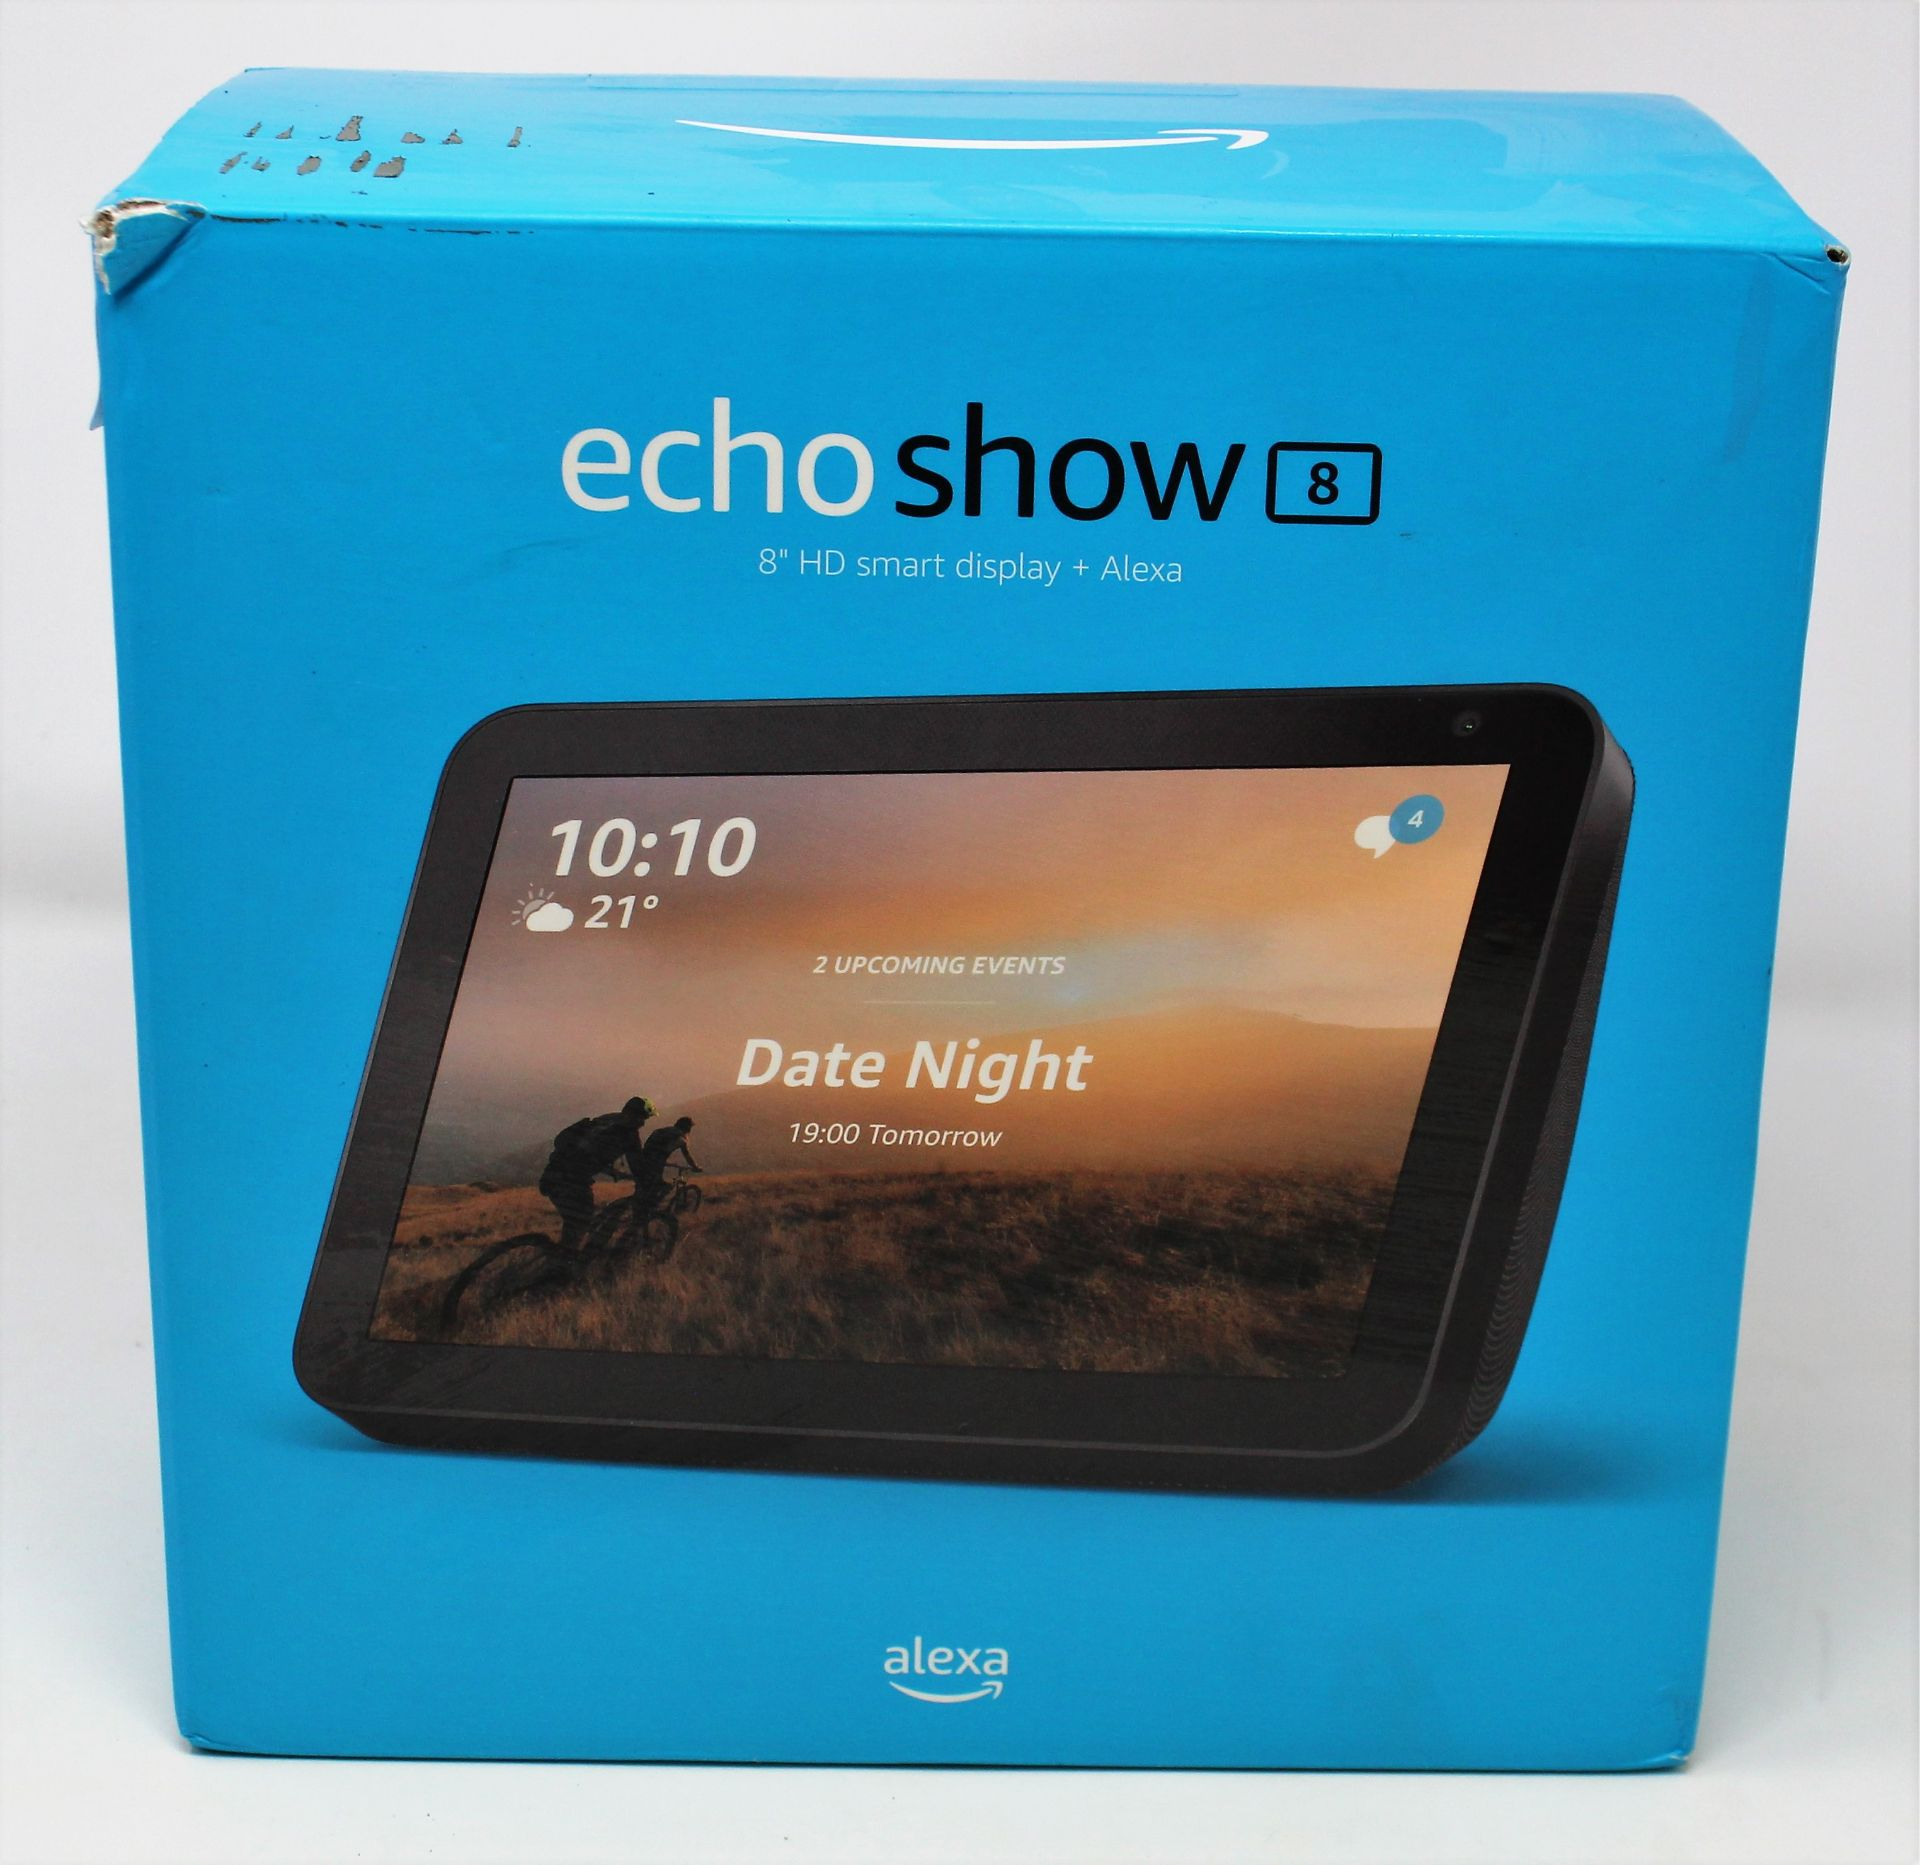 A boxed as new Amazon Echo Show 8 Smart Speaker with Alexa (Box opened, some damage to box).